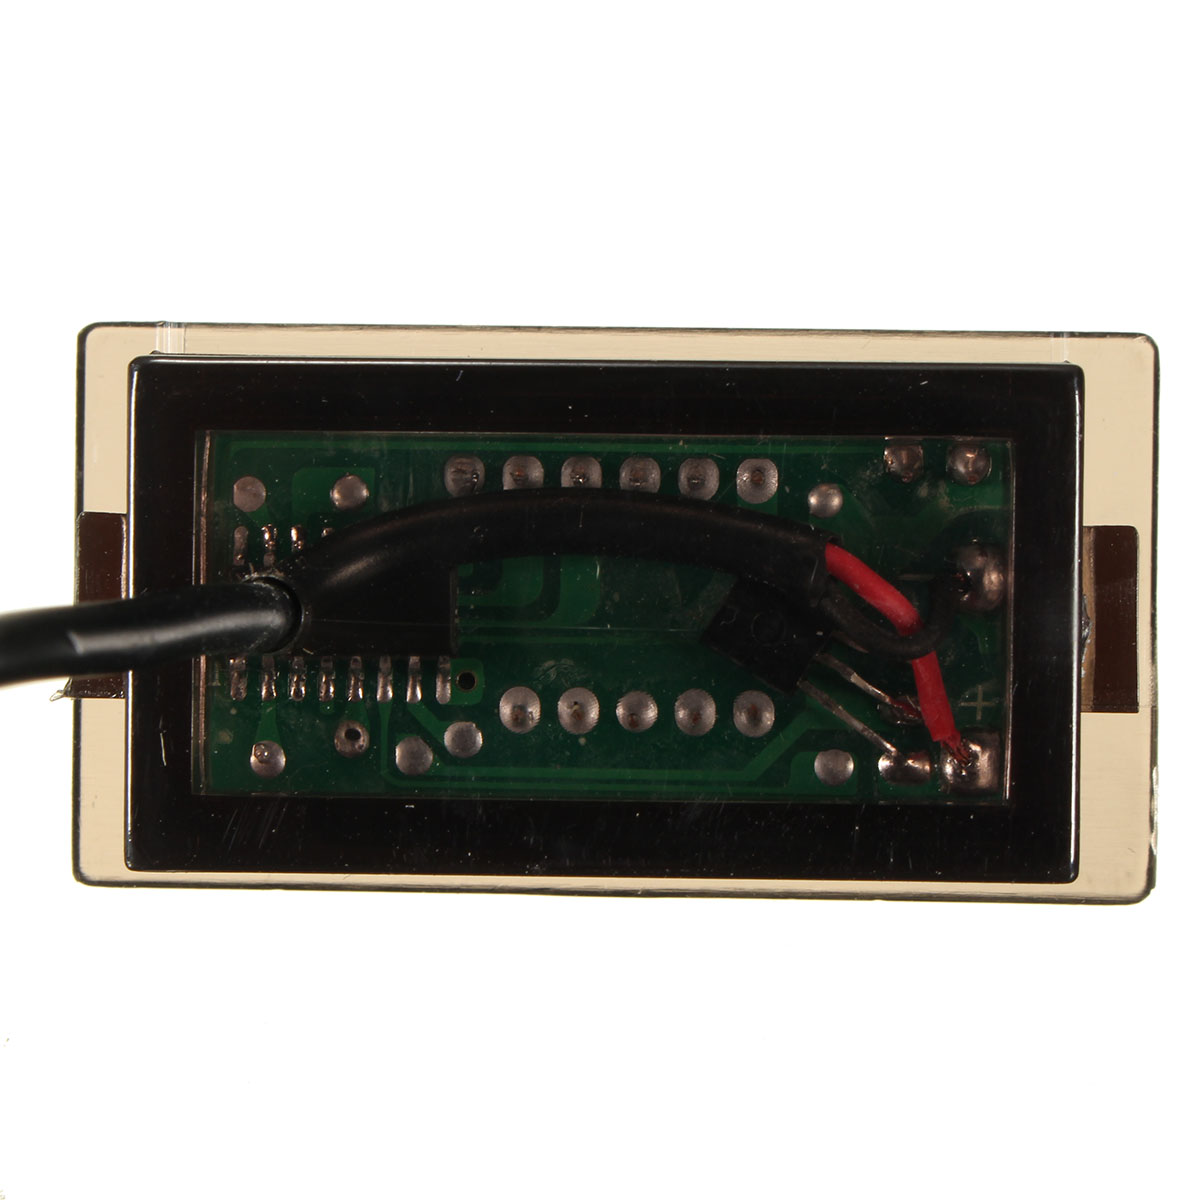 12 Volt Panel Meter : Dc v led digital display panel volt meter voltage